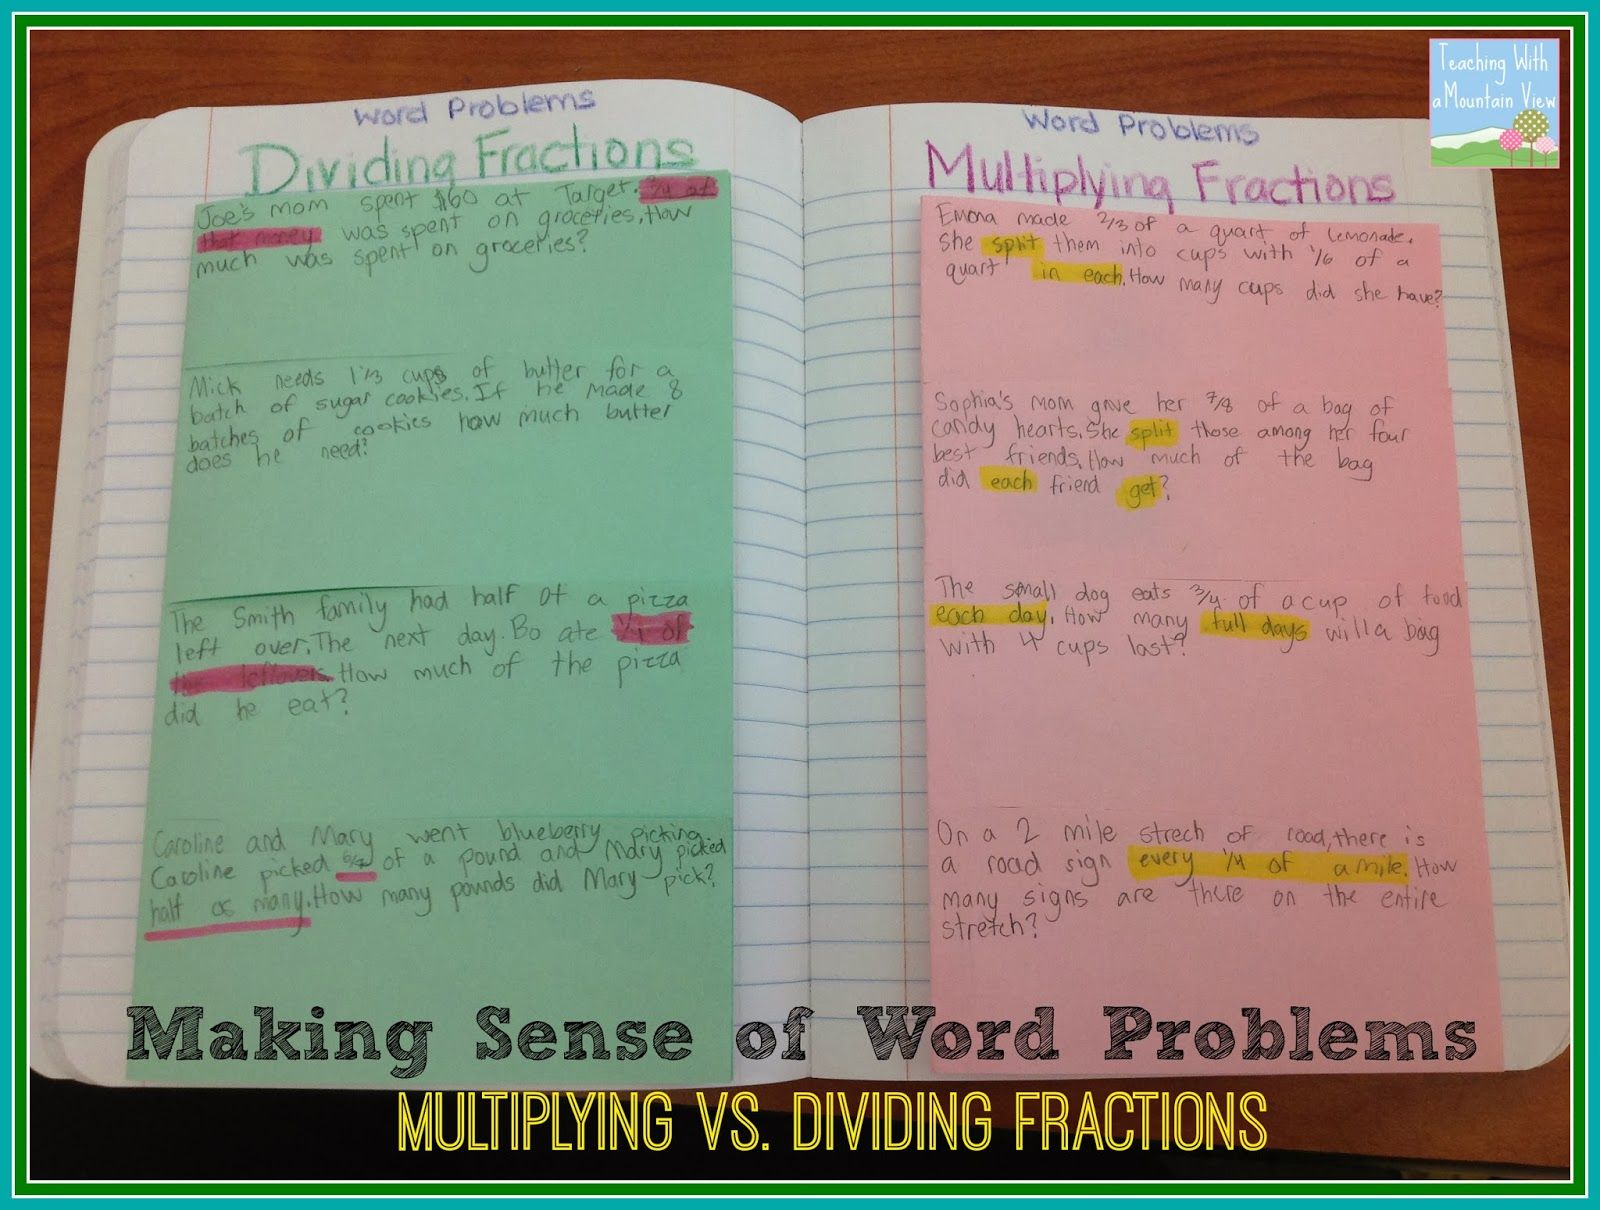 worksheet Multiplying And Dividing Fractions Word Problems making sense of multiplying dividing fractions word problems problems